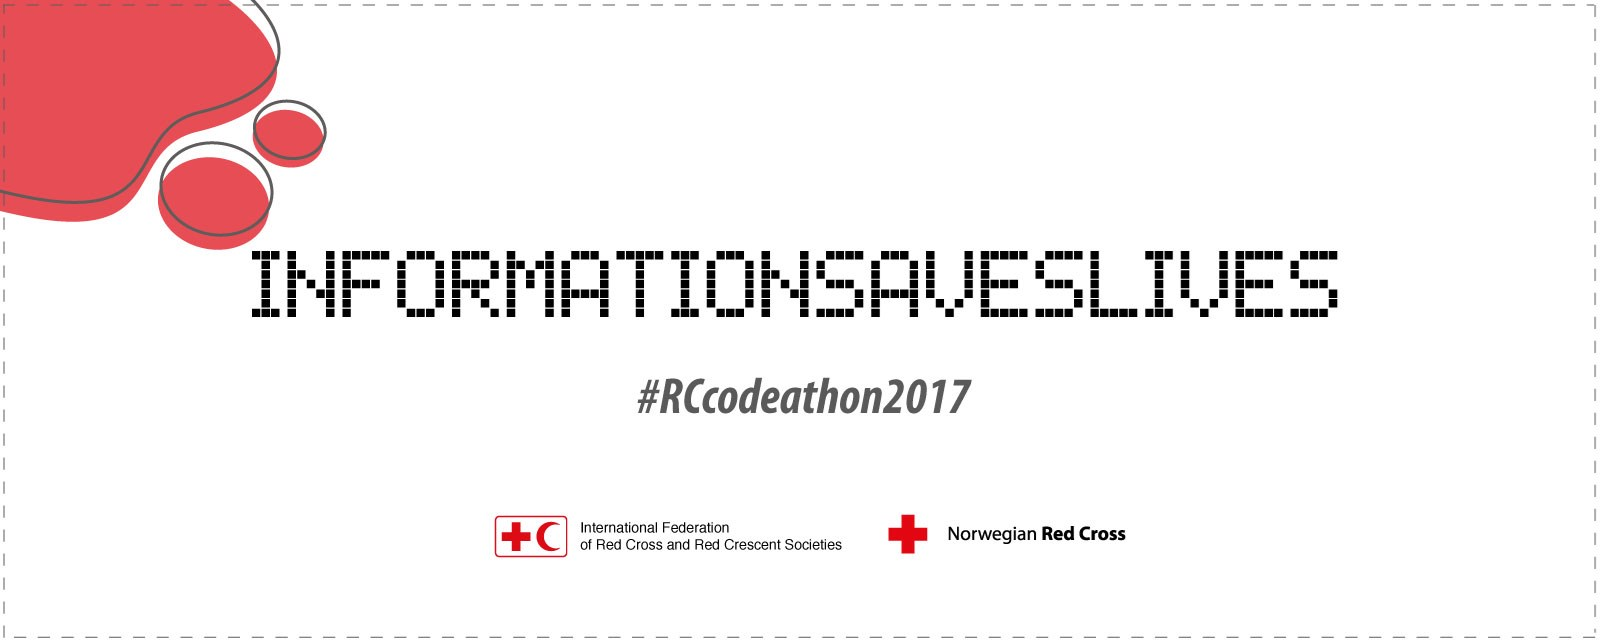 Codeathon banner white background with black Cell phone digits saying information saves lives